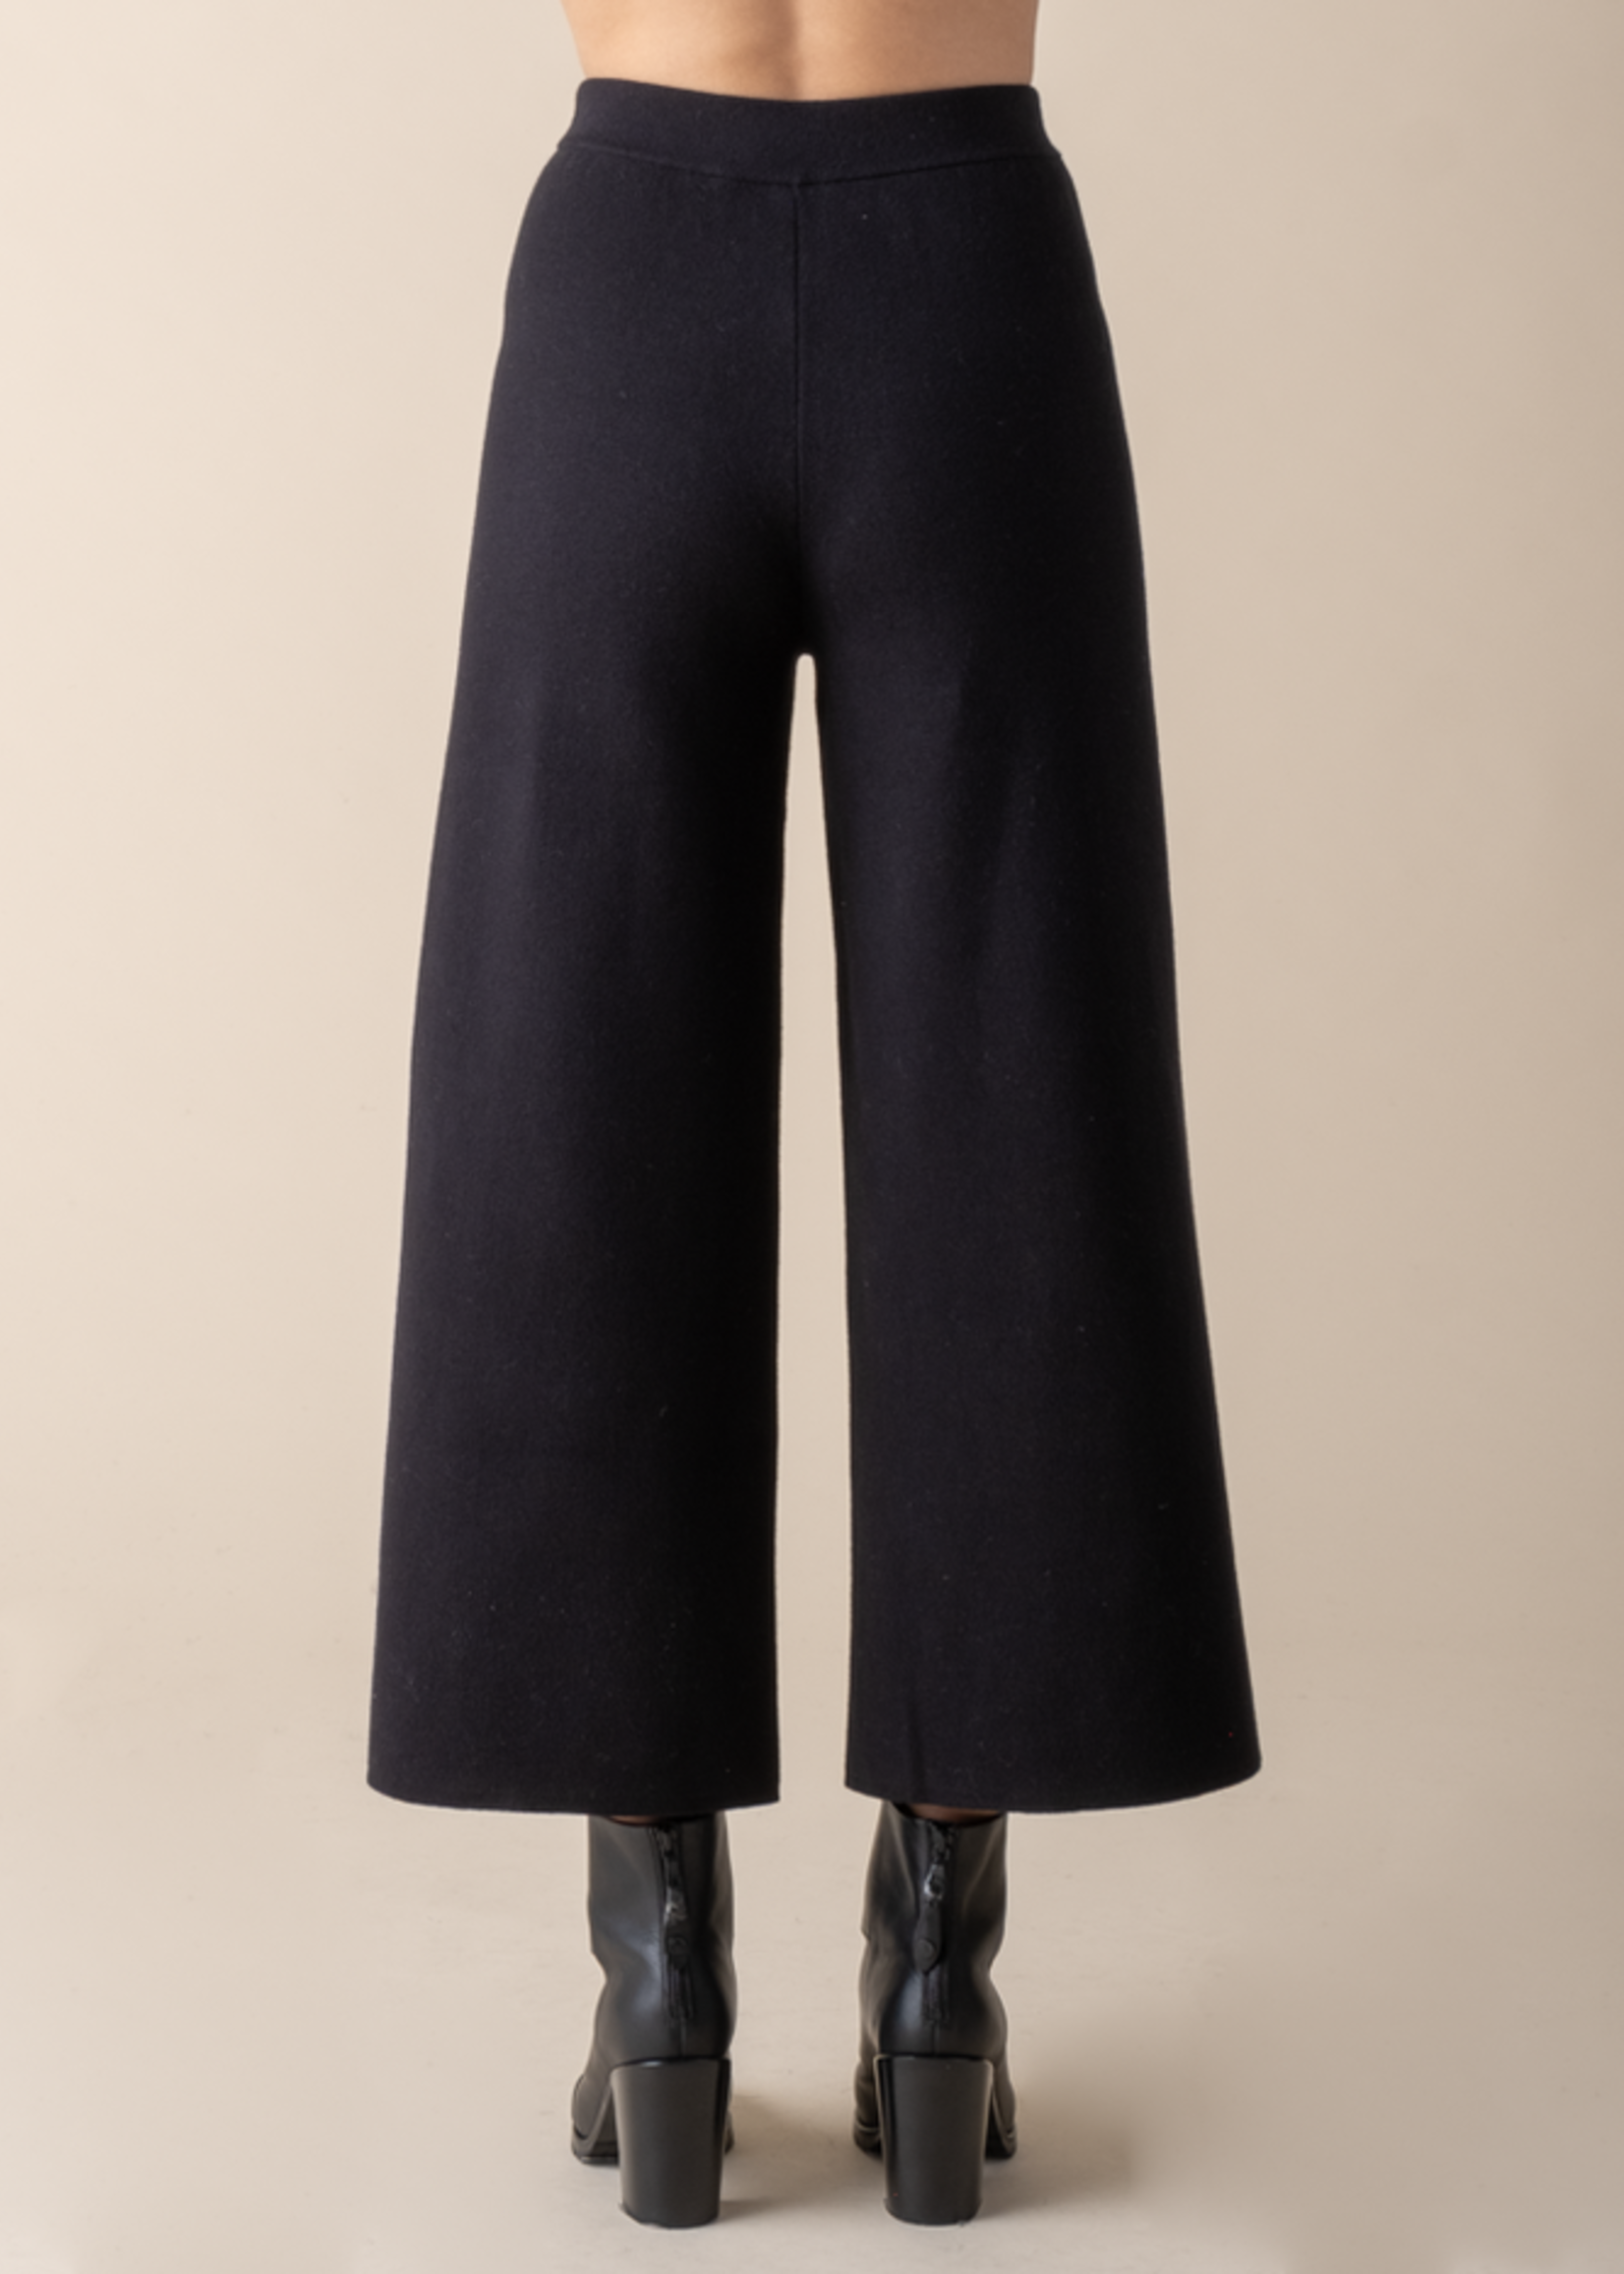 Margaret O'Leary Double Knit Culottes